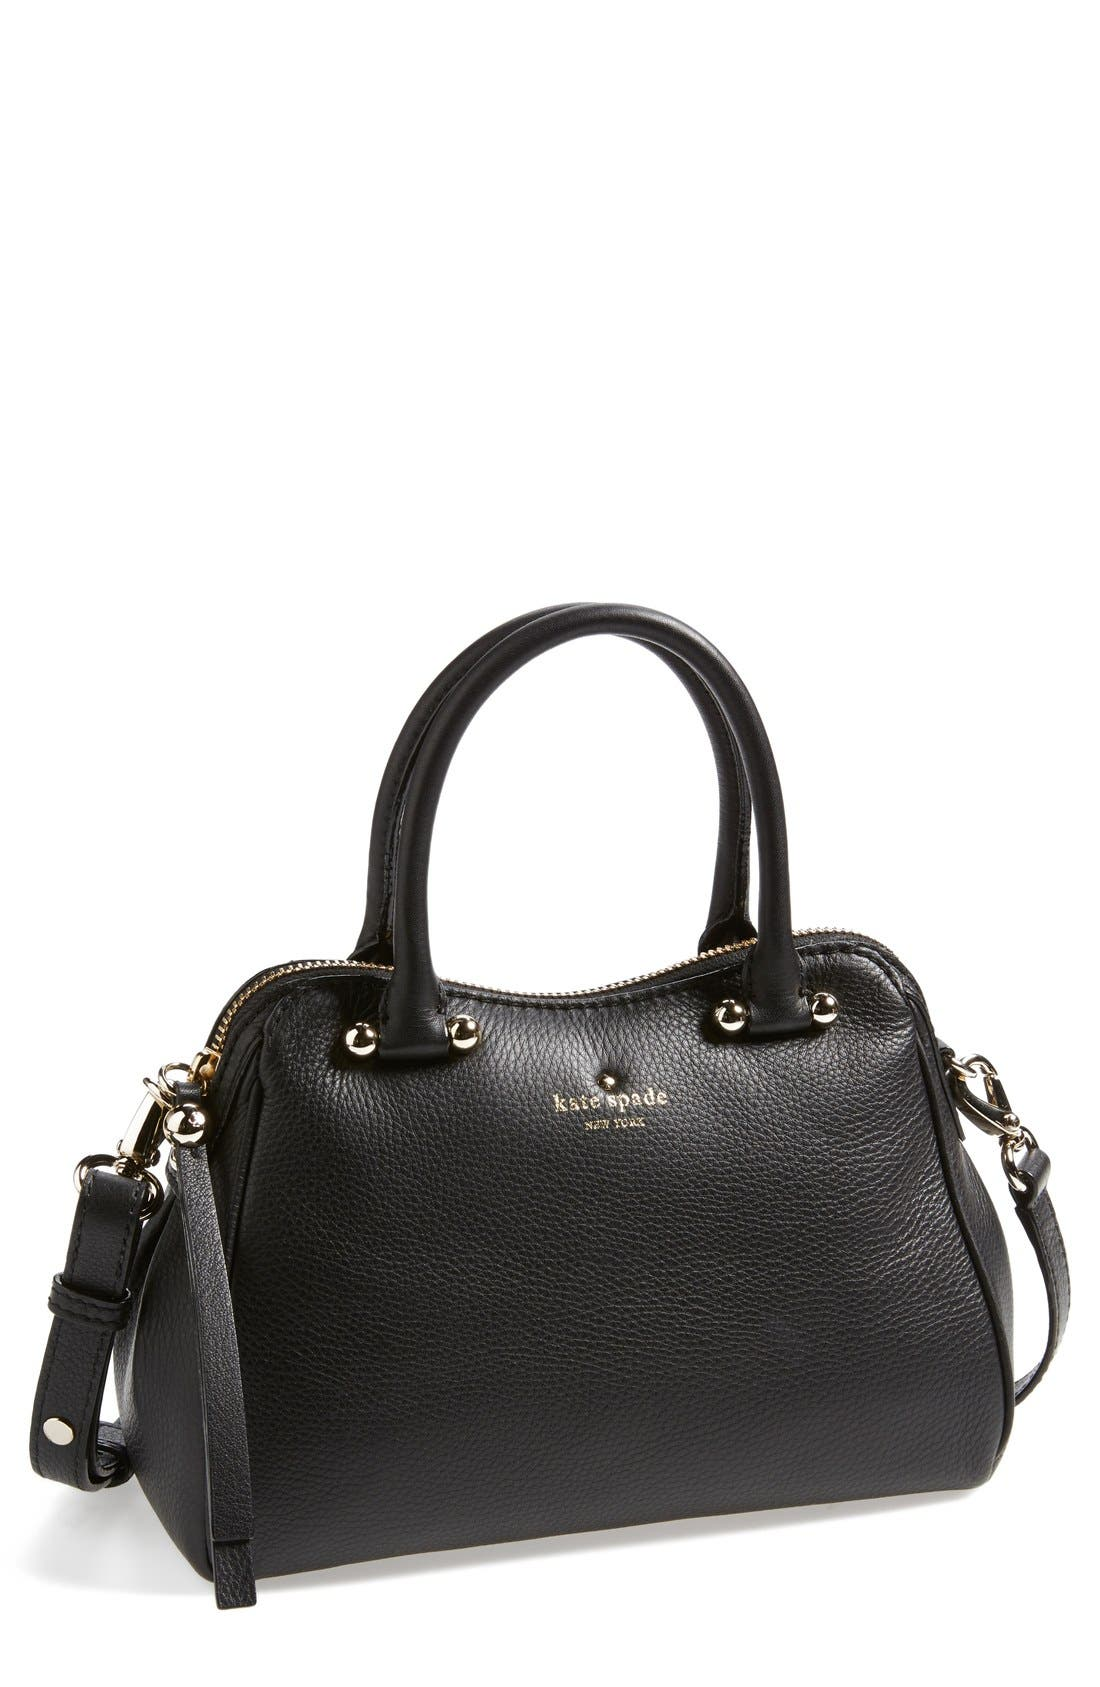 Alternate Image 1 Selected - kate spade new york 'charles street - mini audrey' leather satchel